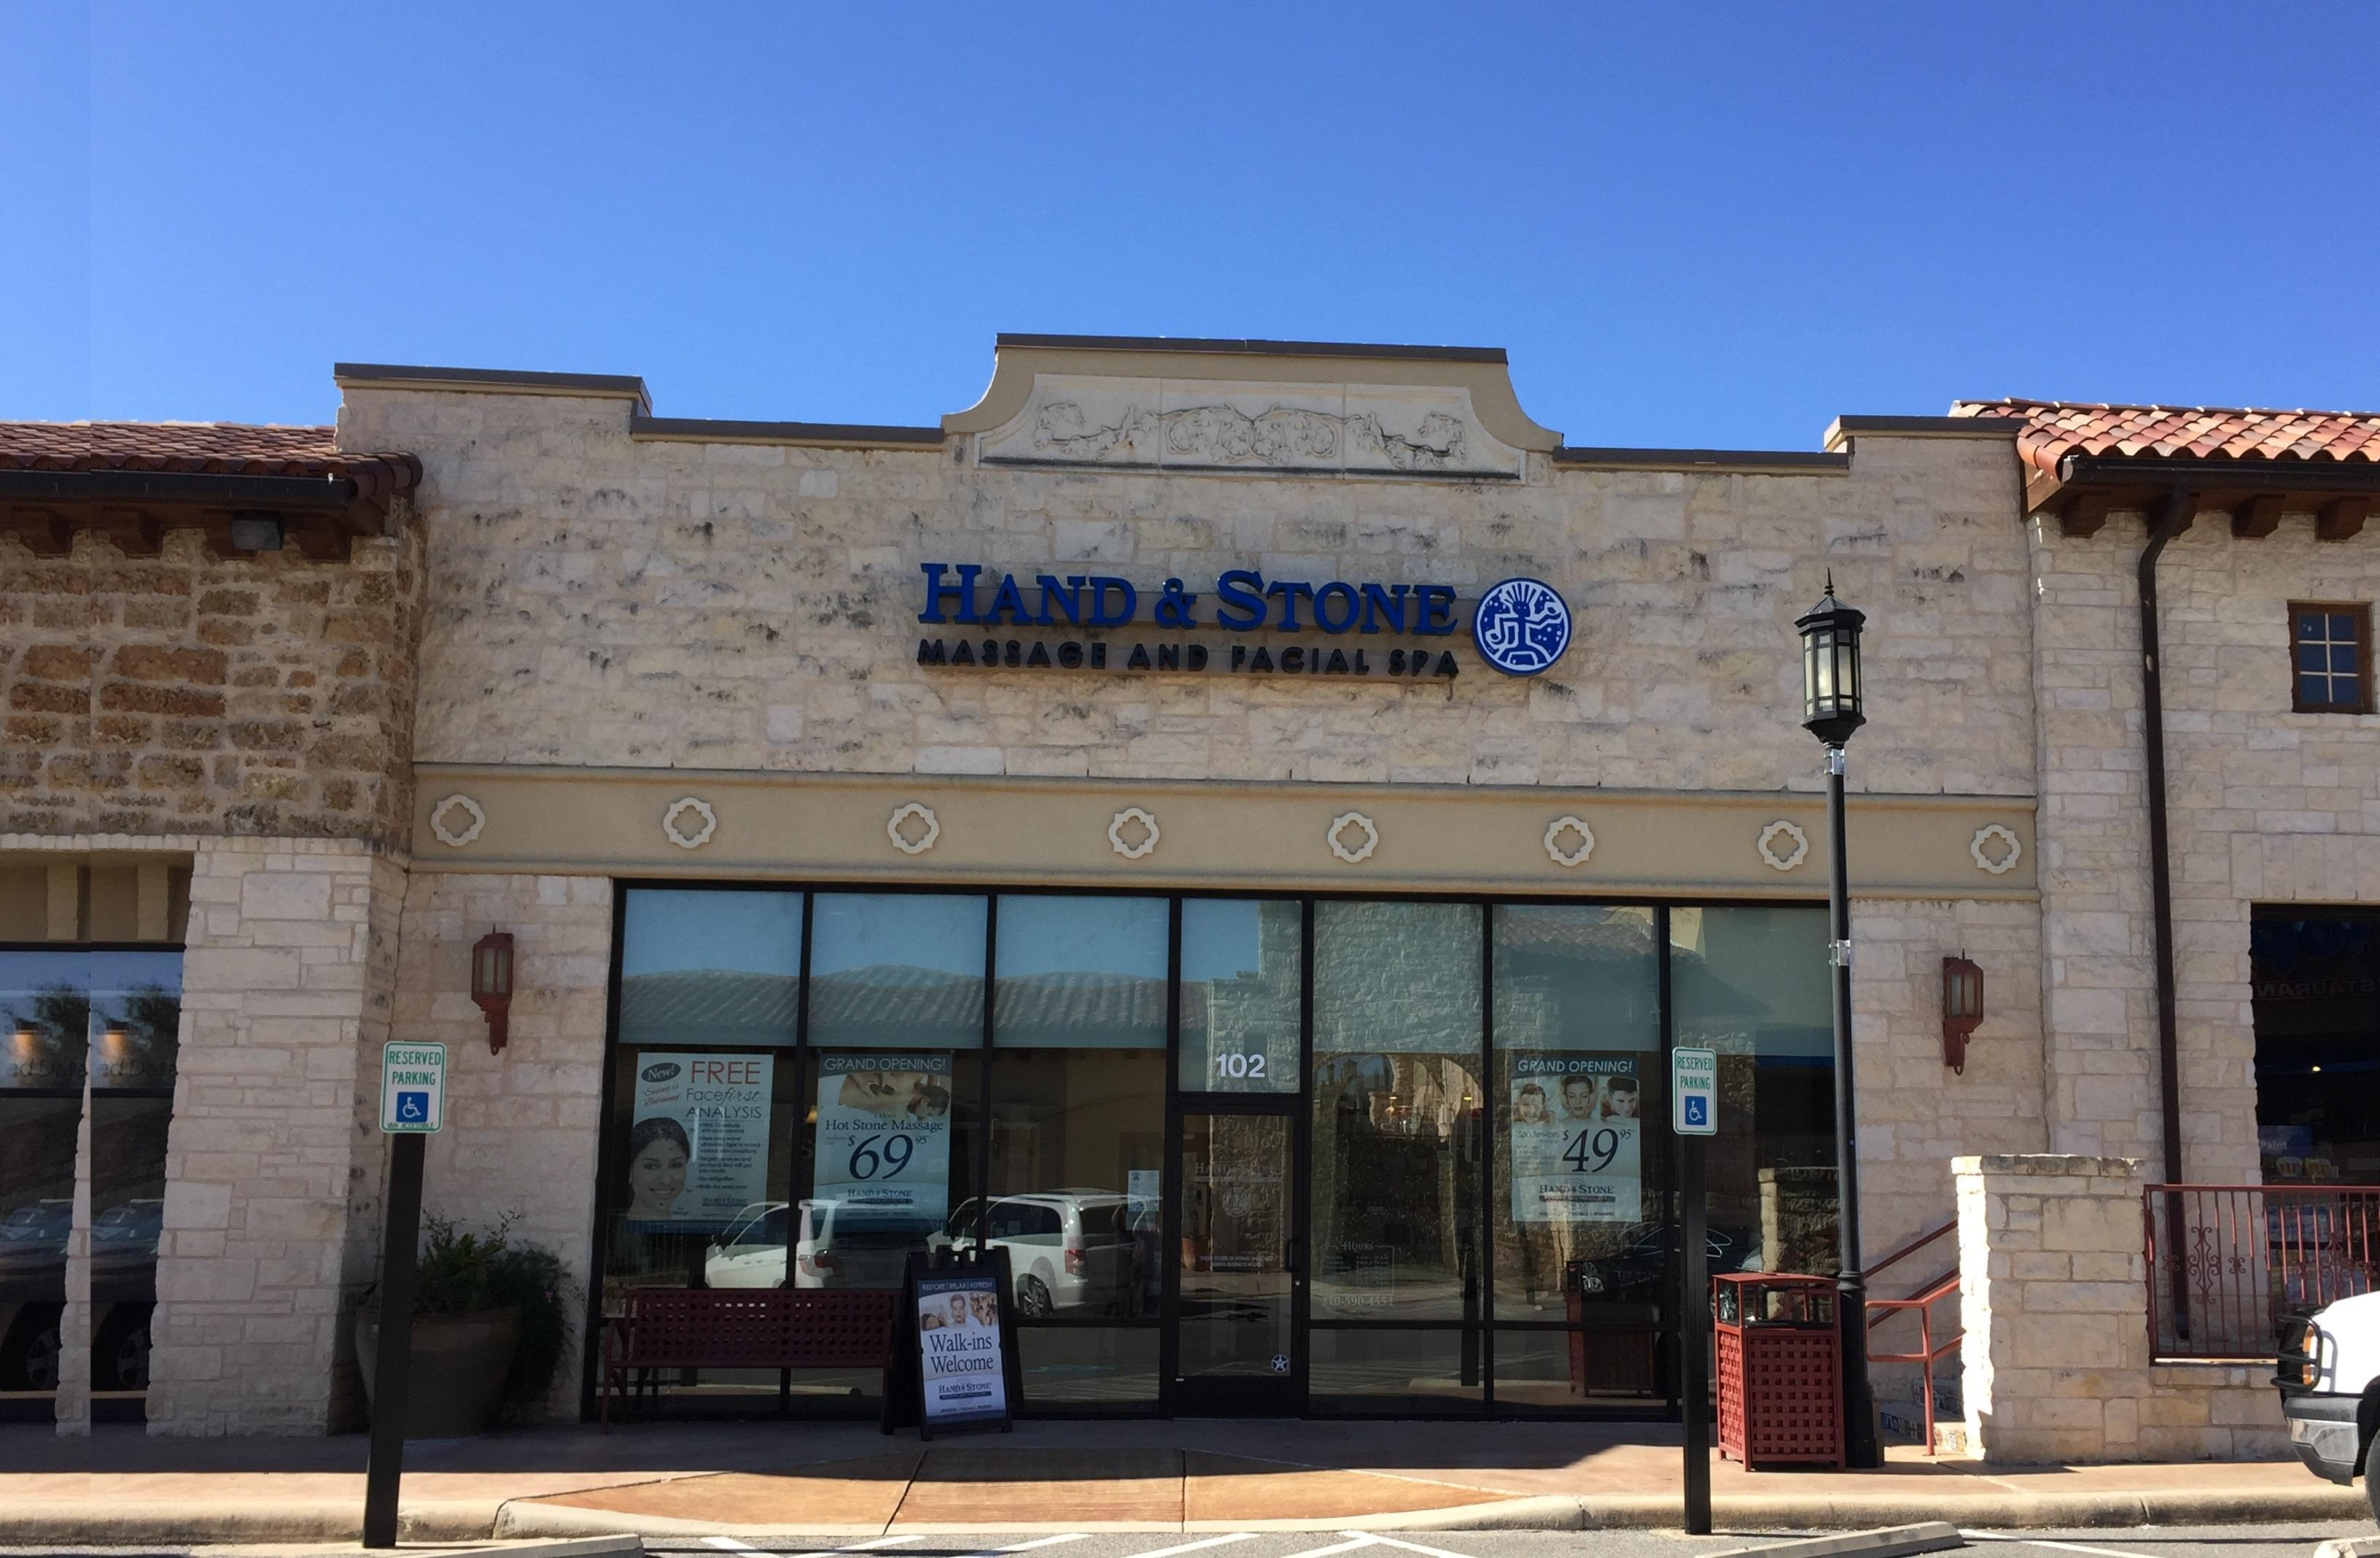 Hand & Stone Massage and Facial Spa in San Antonio, TX ...